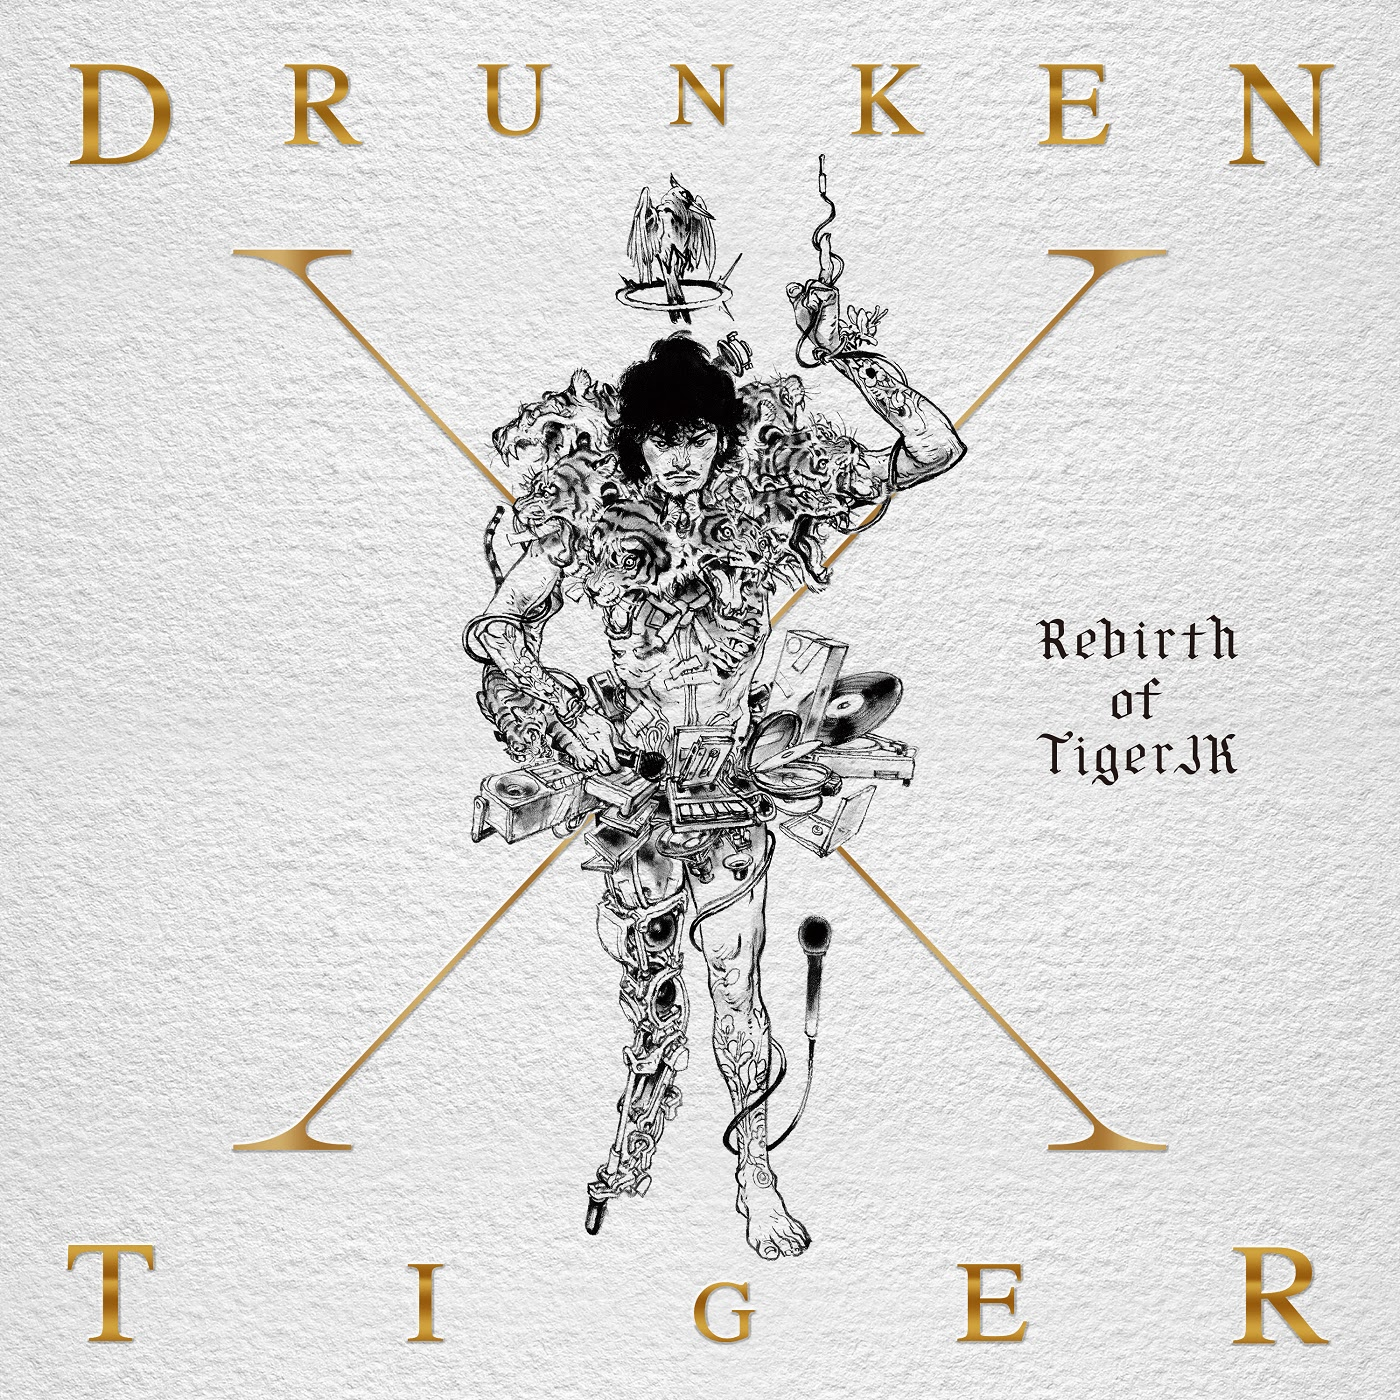 Drunken_Tiger_X_-_Rebirth_of_Tiger_JK_album_cover